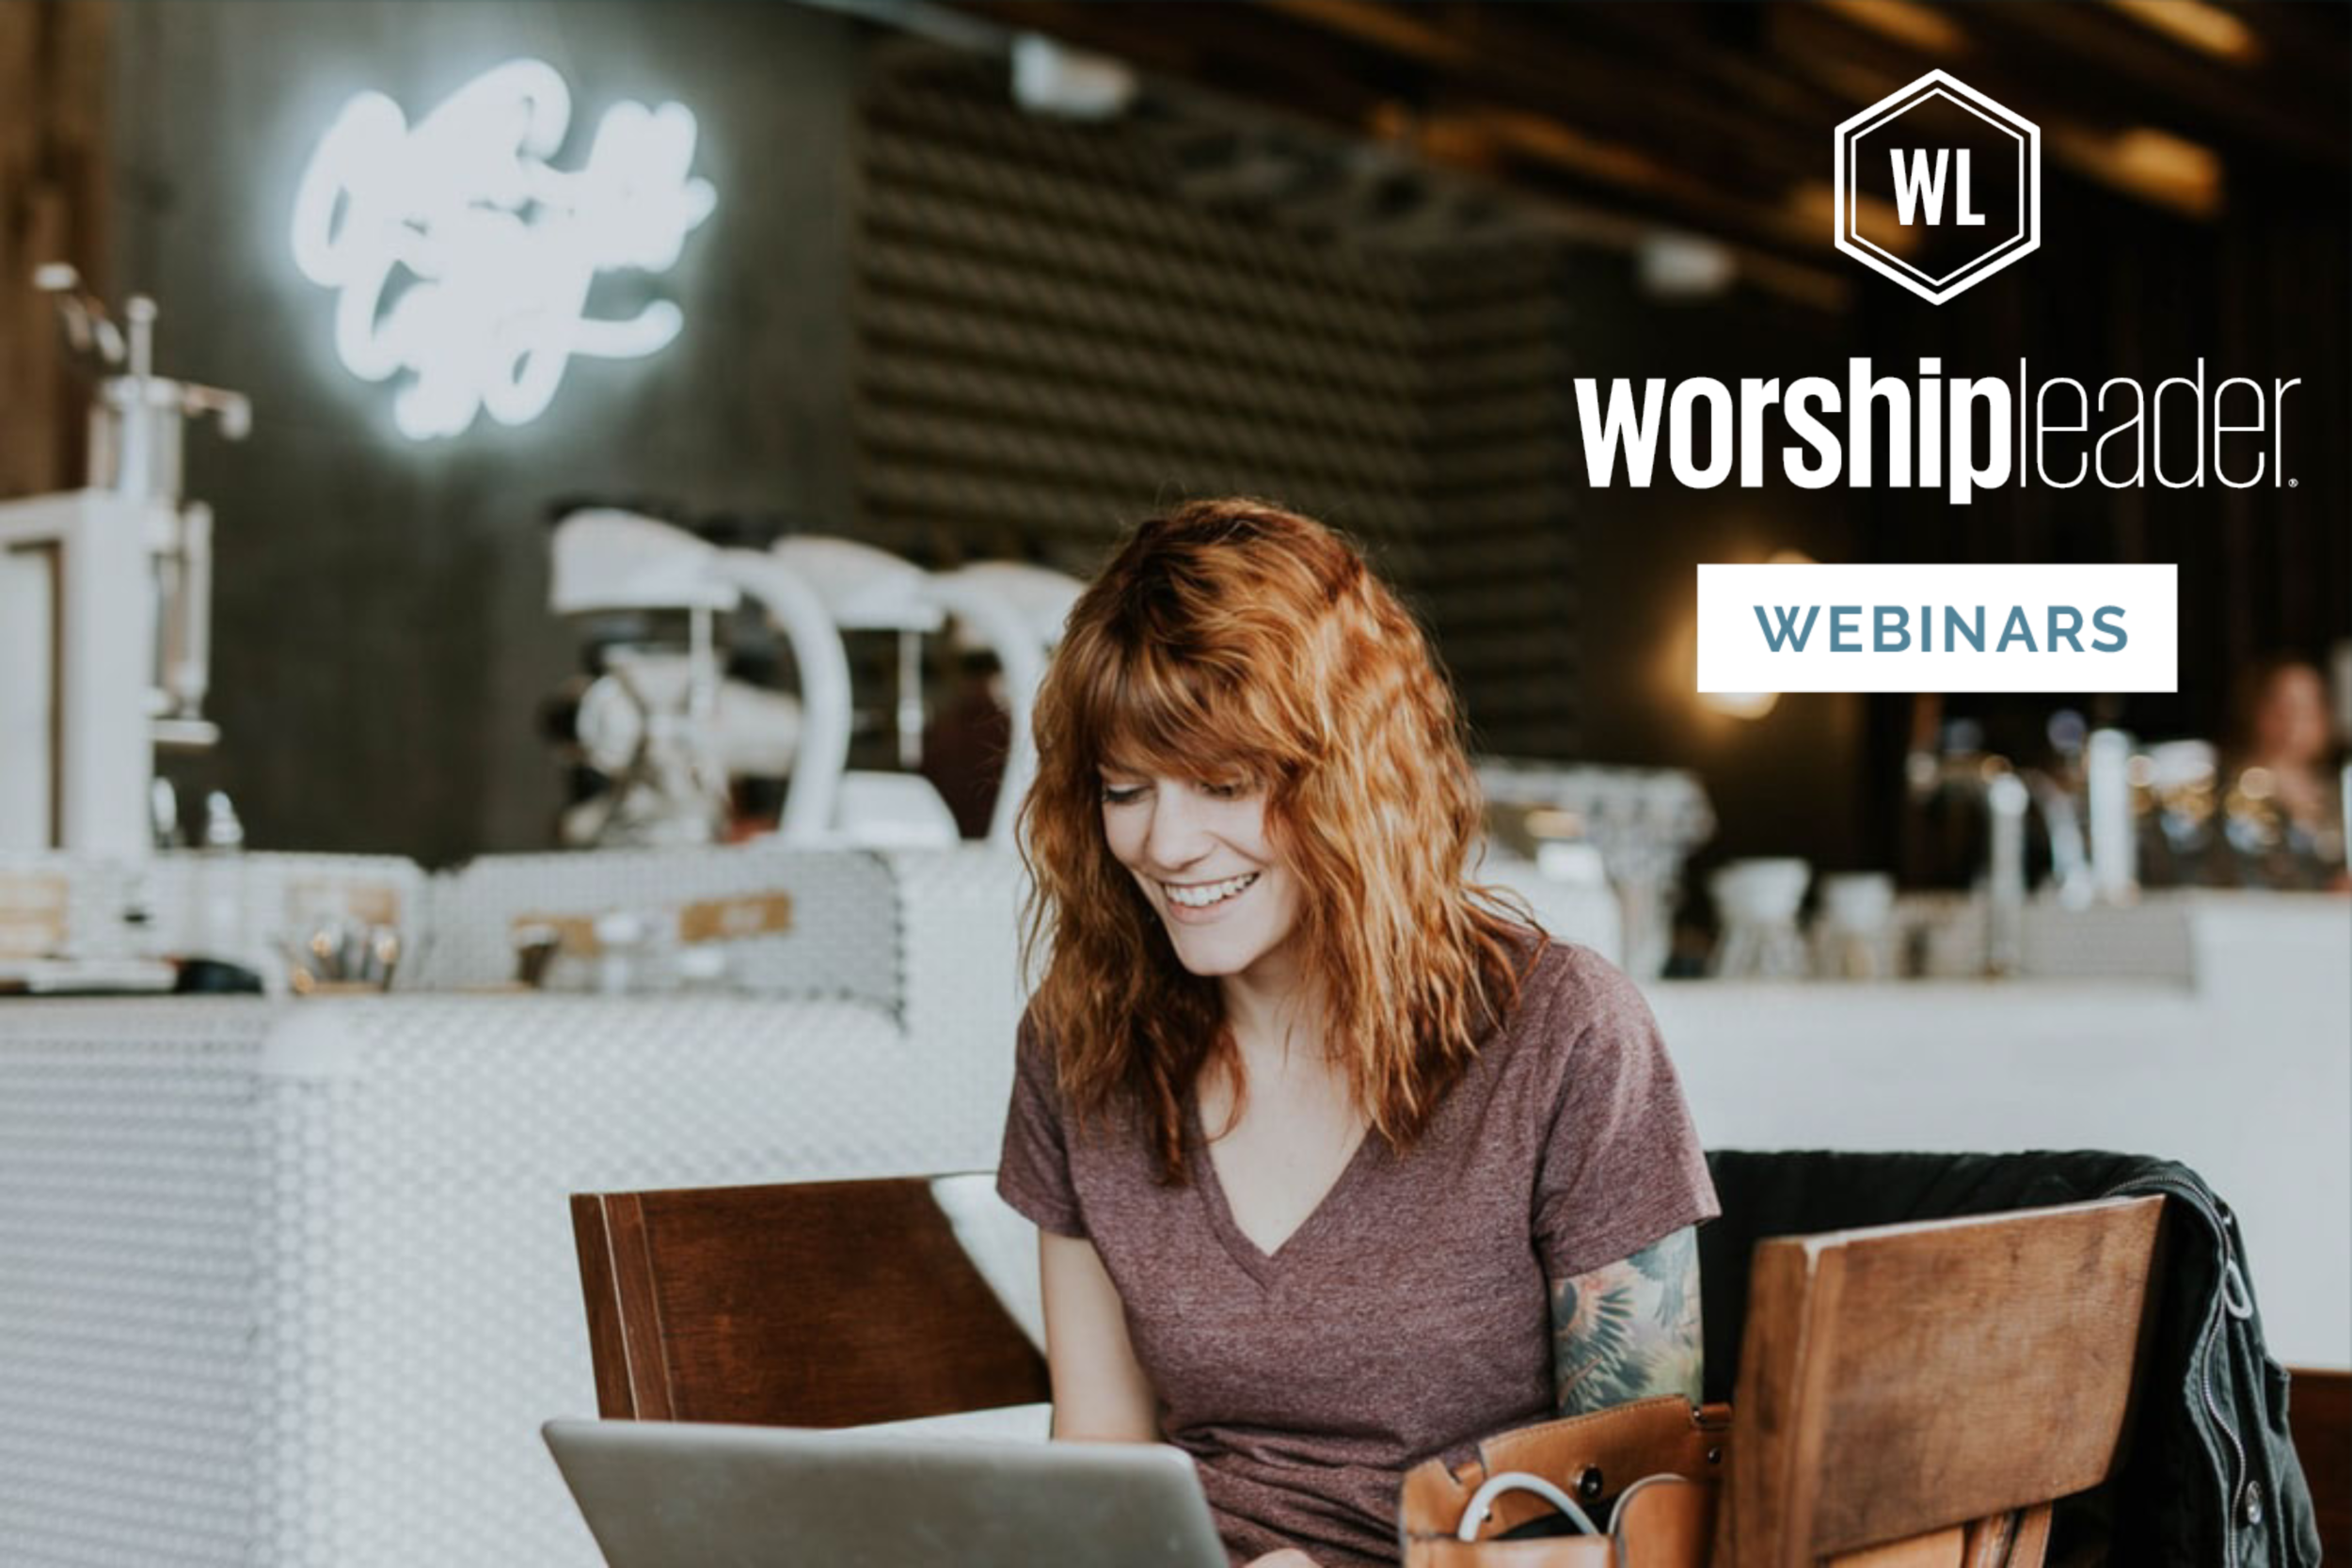 KEEP THE LEARNING GOING… - When we're not compiling the magazine or running around a conference, you can find us online during one of our Worship Leader Webinars. Twice a month we host online classes at an affordable price with teachers on the cutting edge of worship.